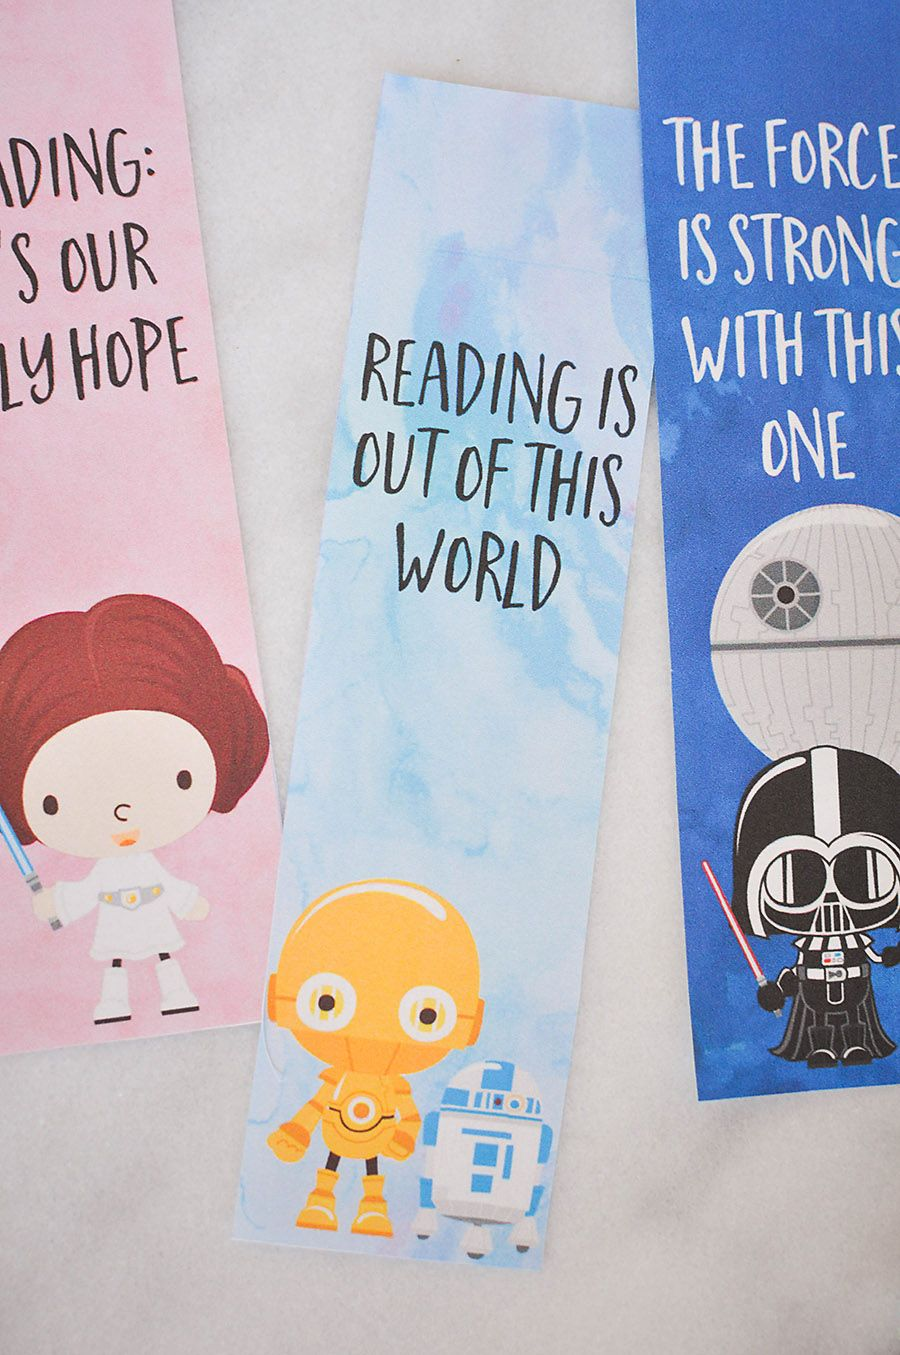 picture about Star Wars Bookmarks Printable named Star Wars Bookmarks - Cost-free Printables for Children Pleasurable With